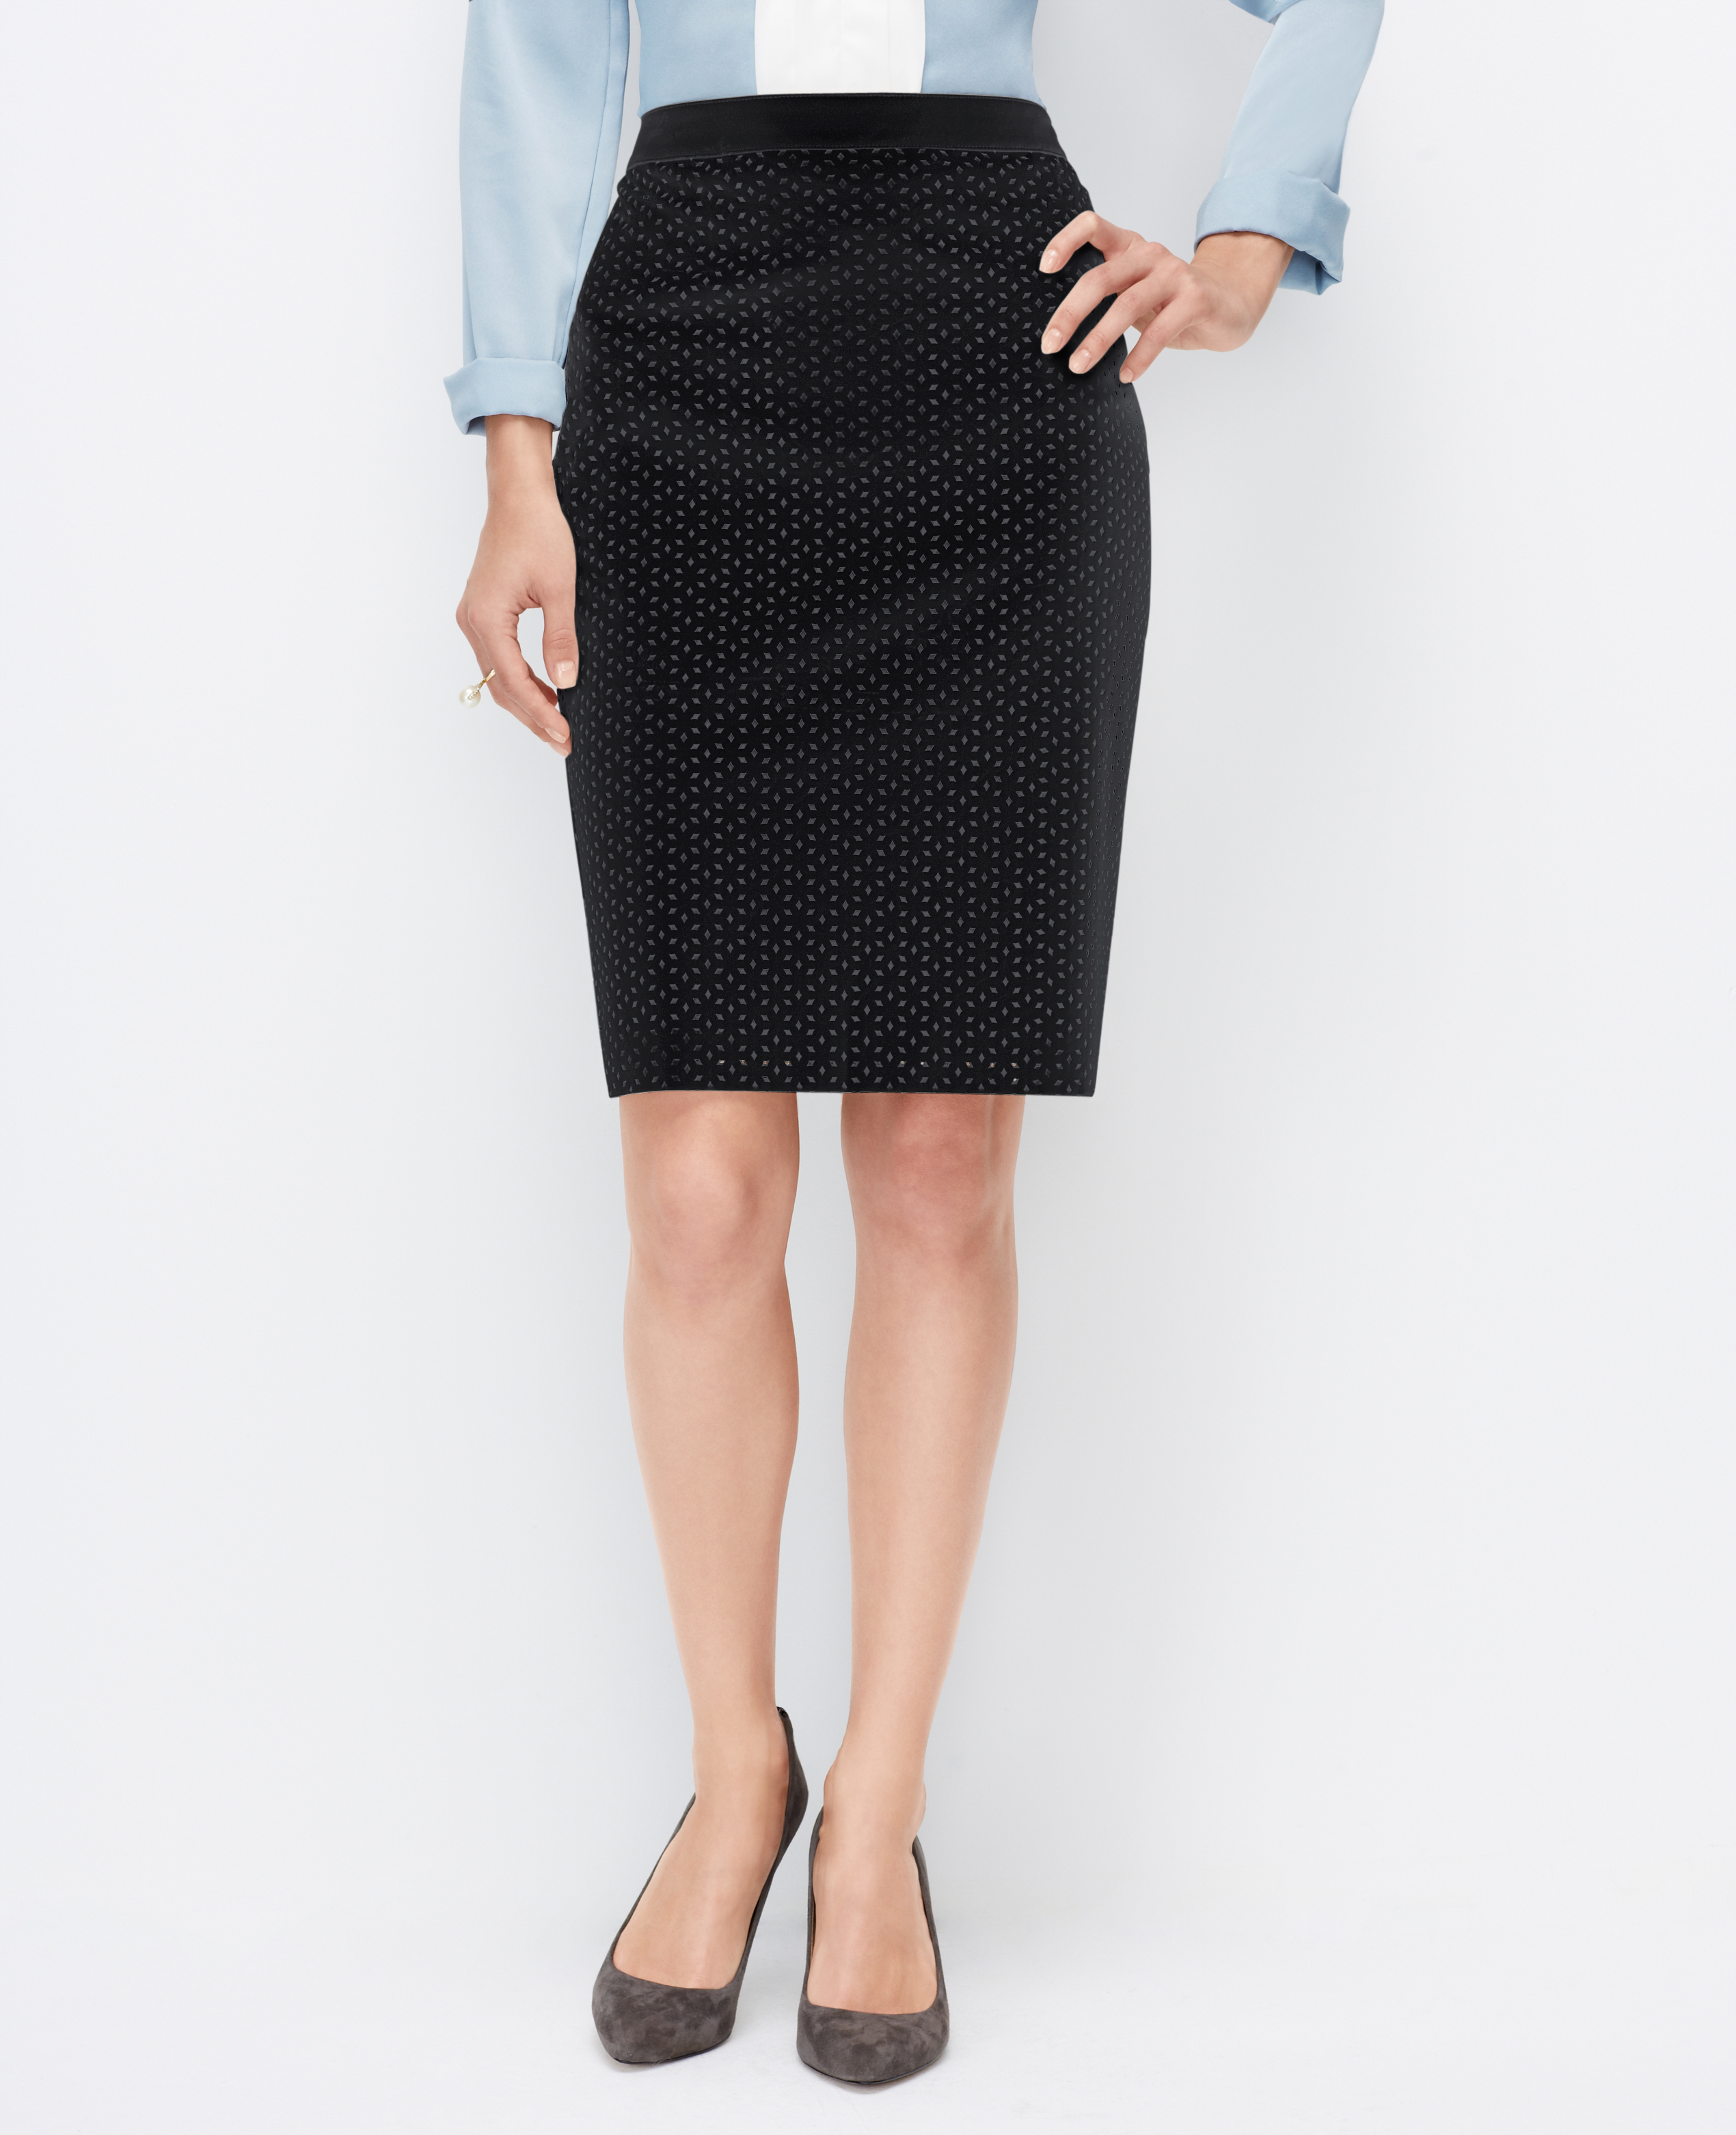 Ann taylor Petite Faux Leather Pencil Skirt in Black | Lyst